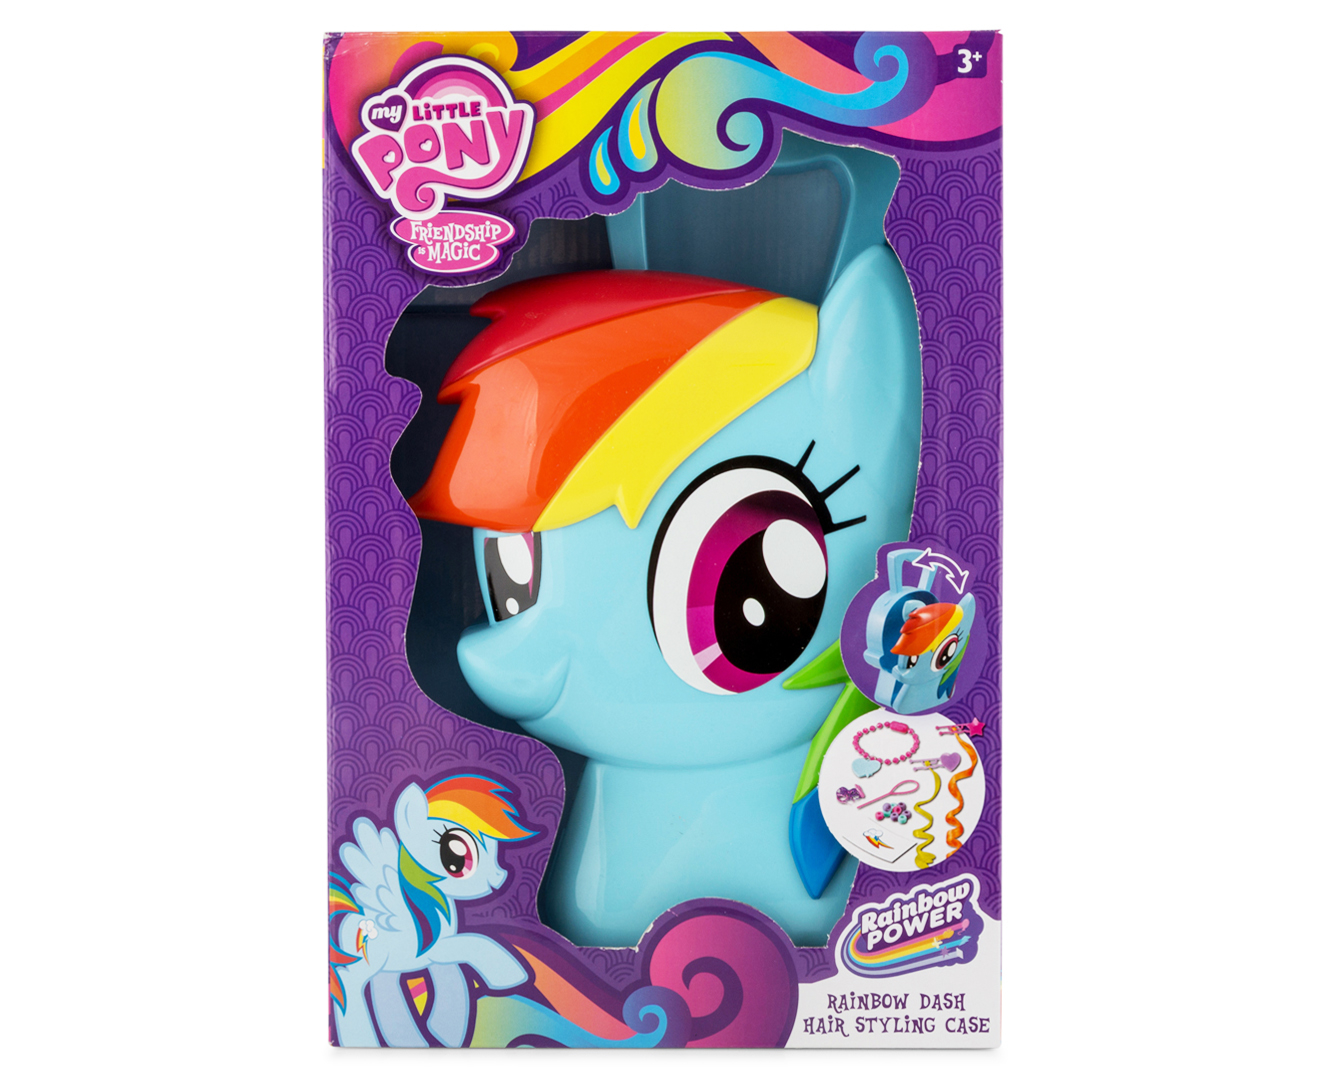 my pony hair styling my pony hair styling rainbow dash catch au 1080